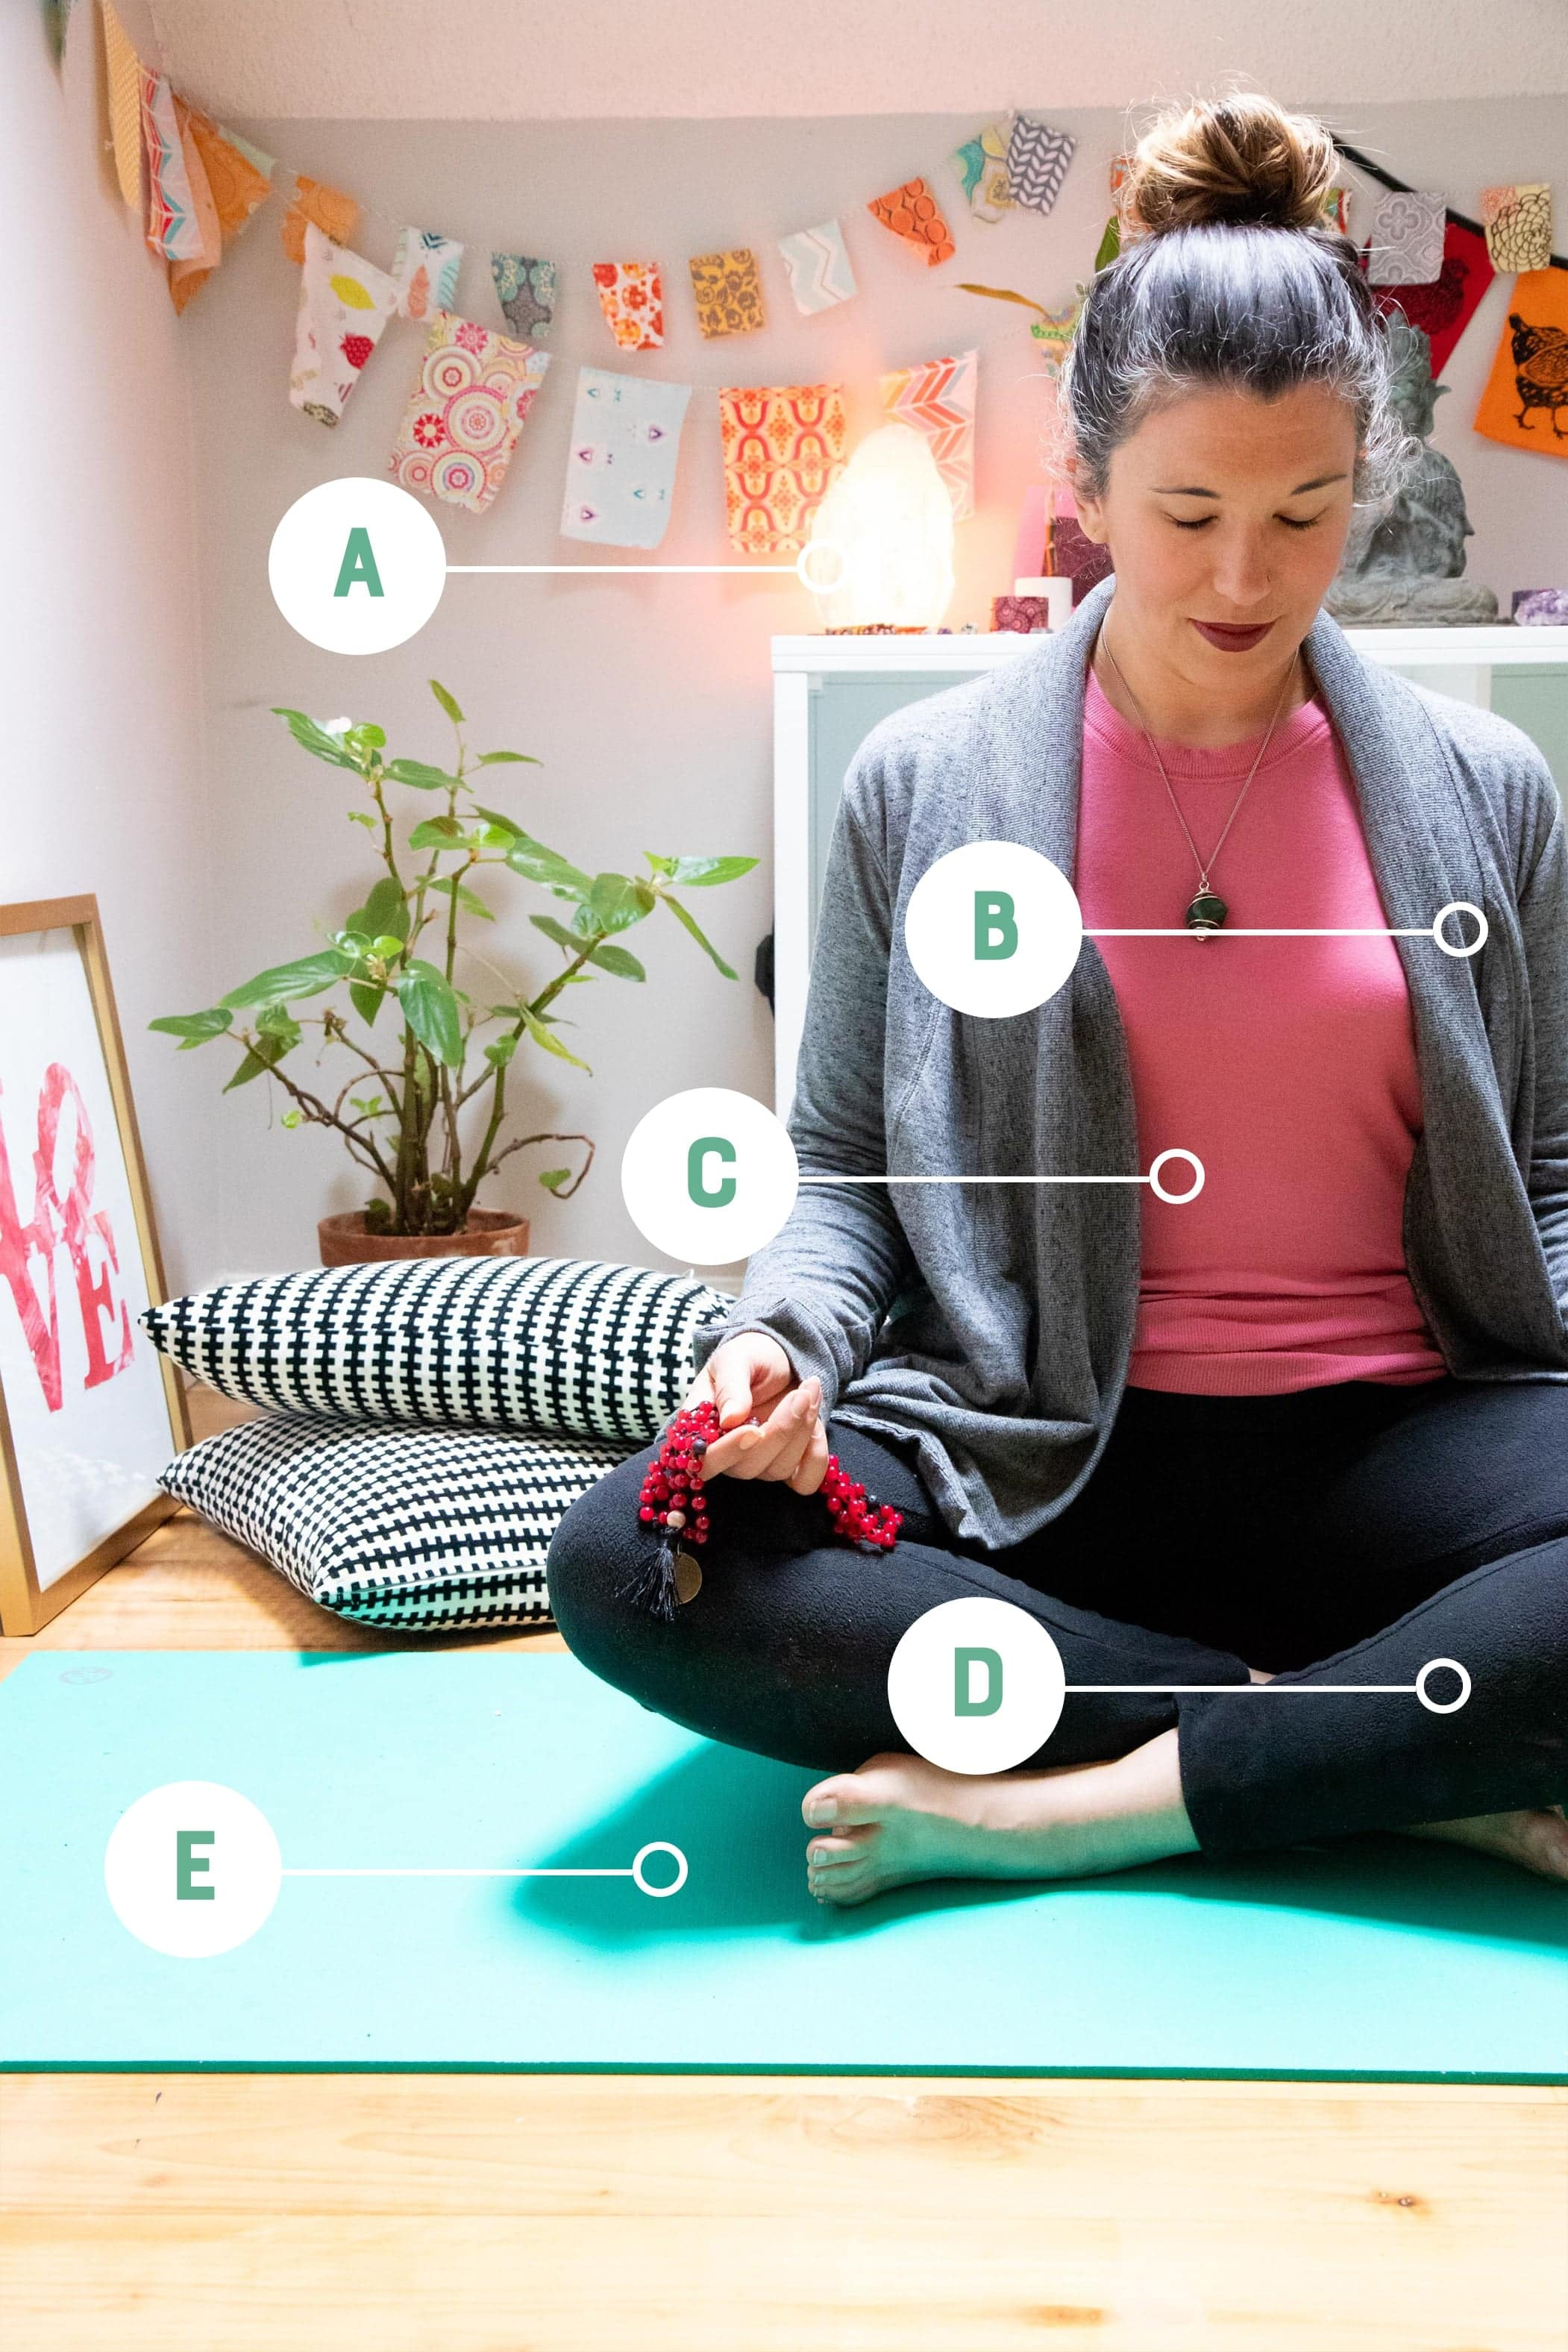 Woman sitting cross-legged on a blue yoga mat. Items are labeled with letters.